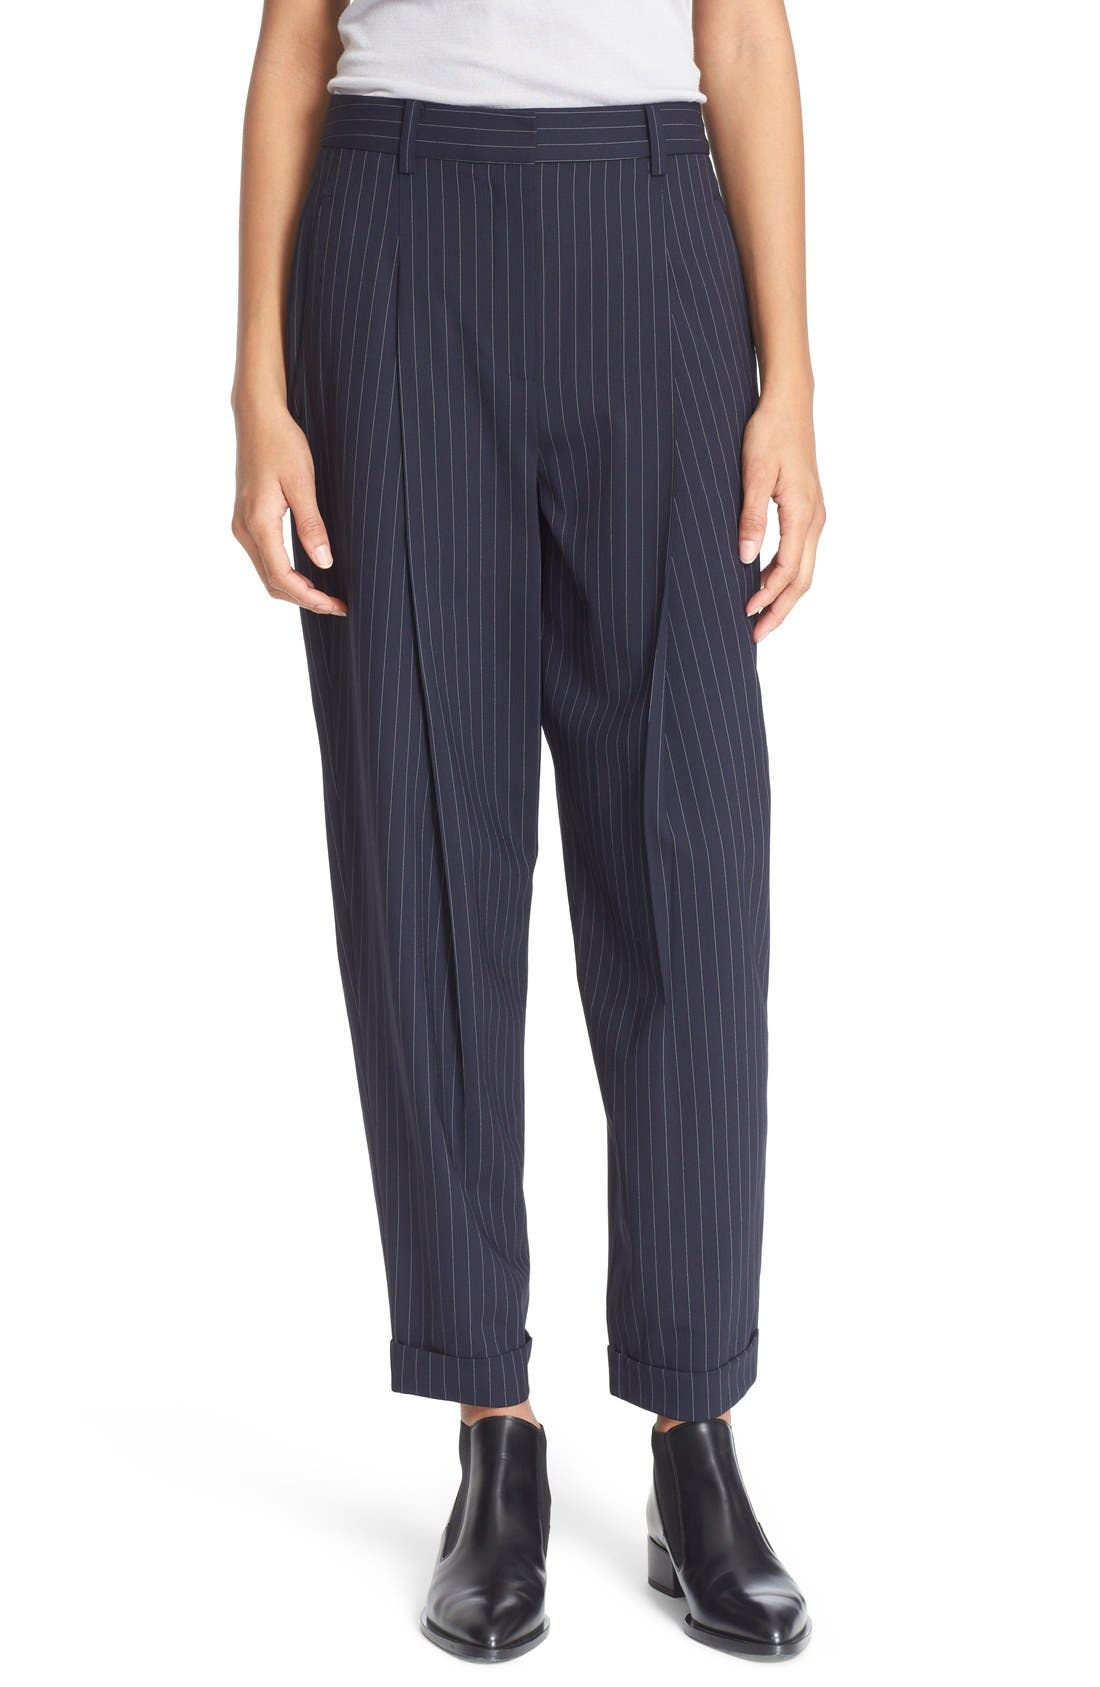 Alternate Image 1 Selected - DKNY Pinstripe Cuff Pants